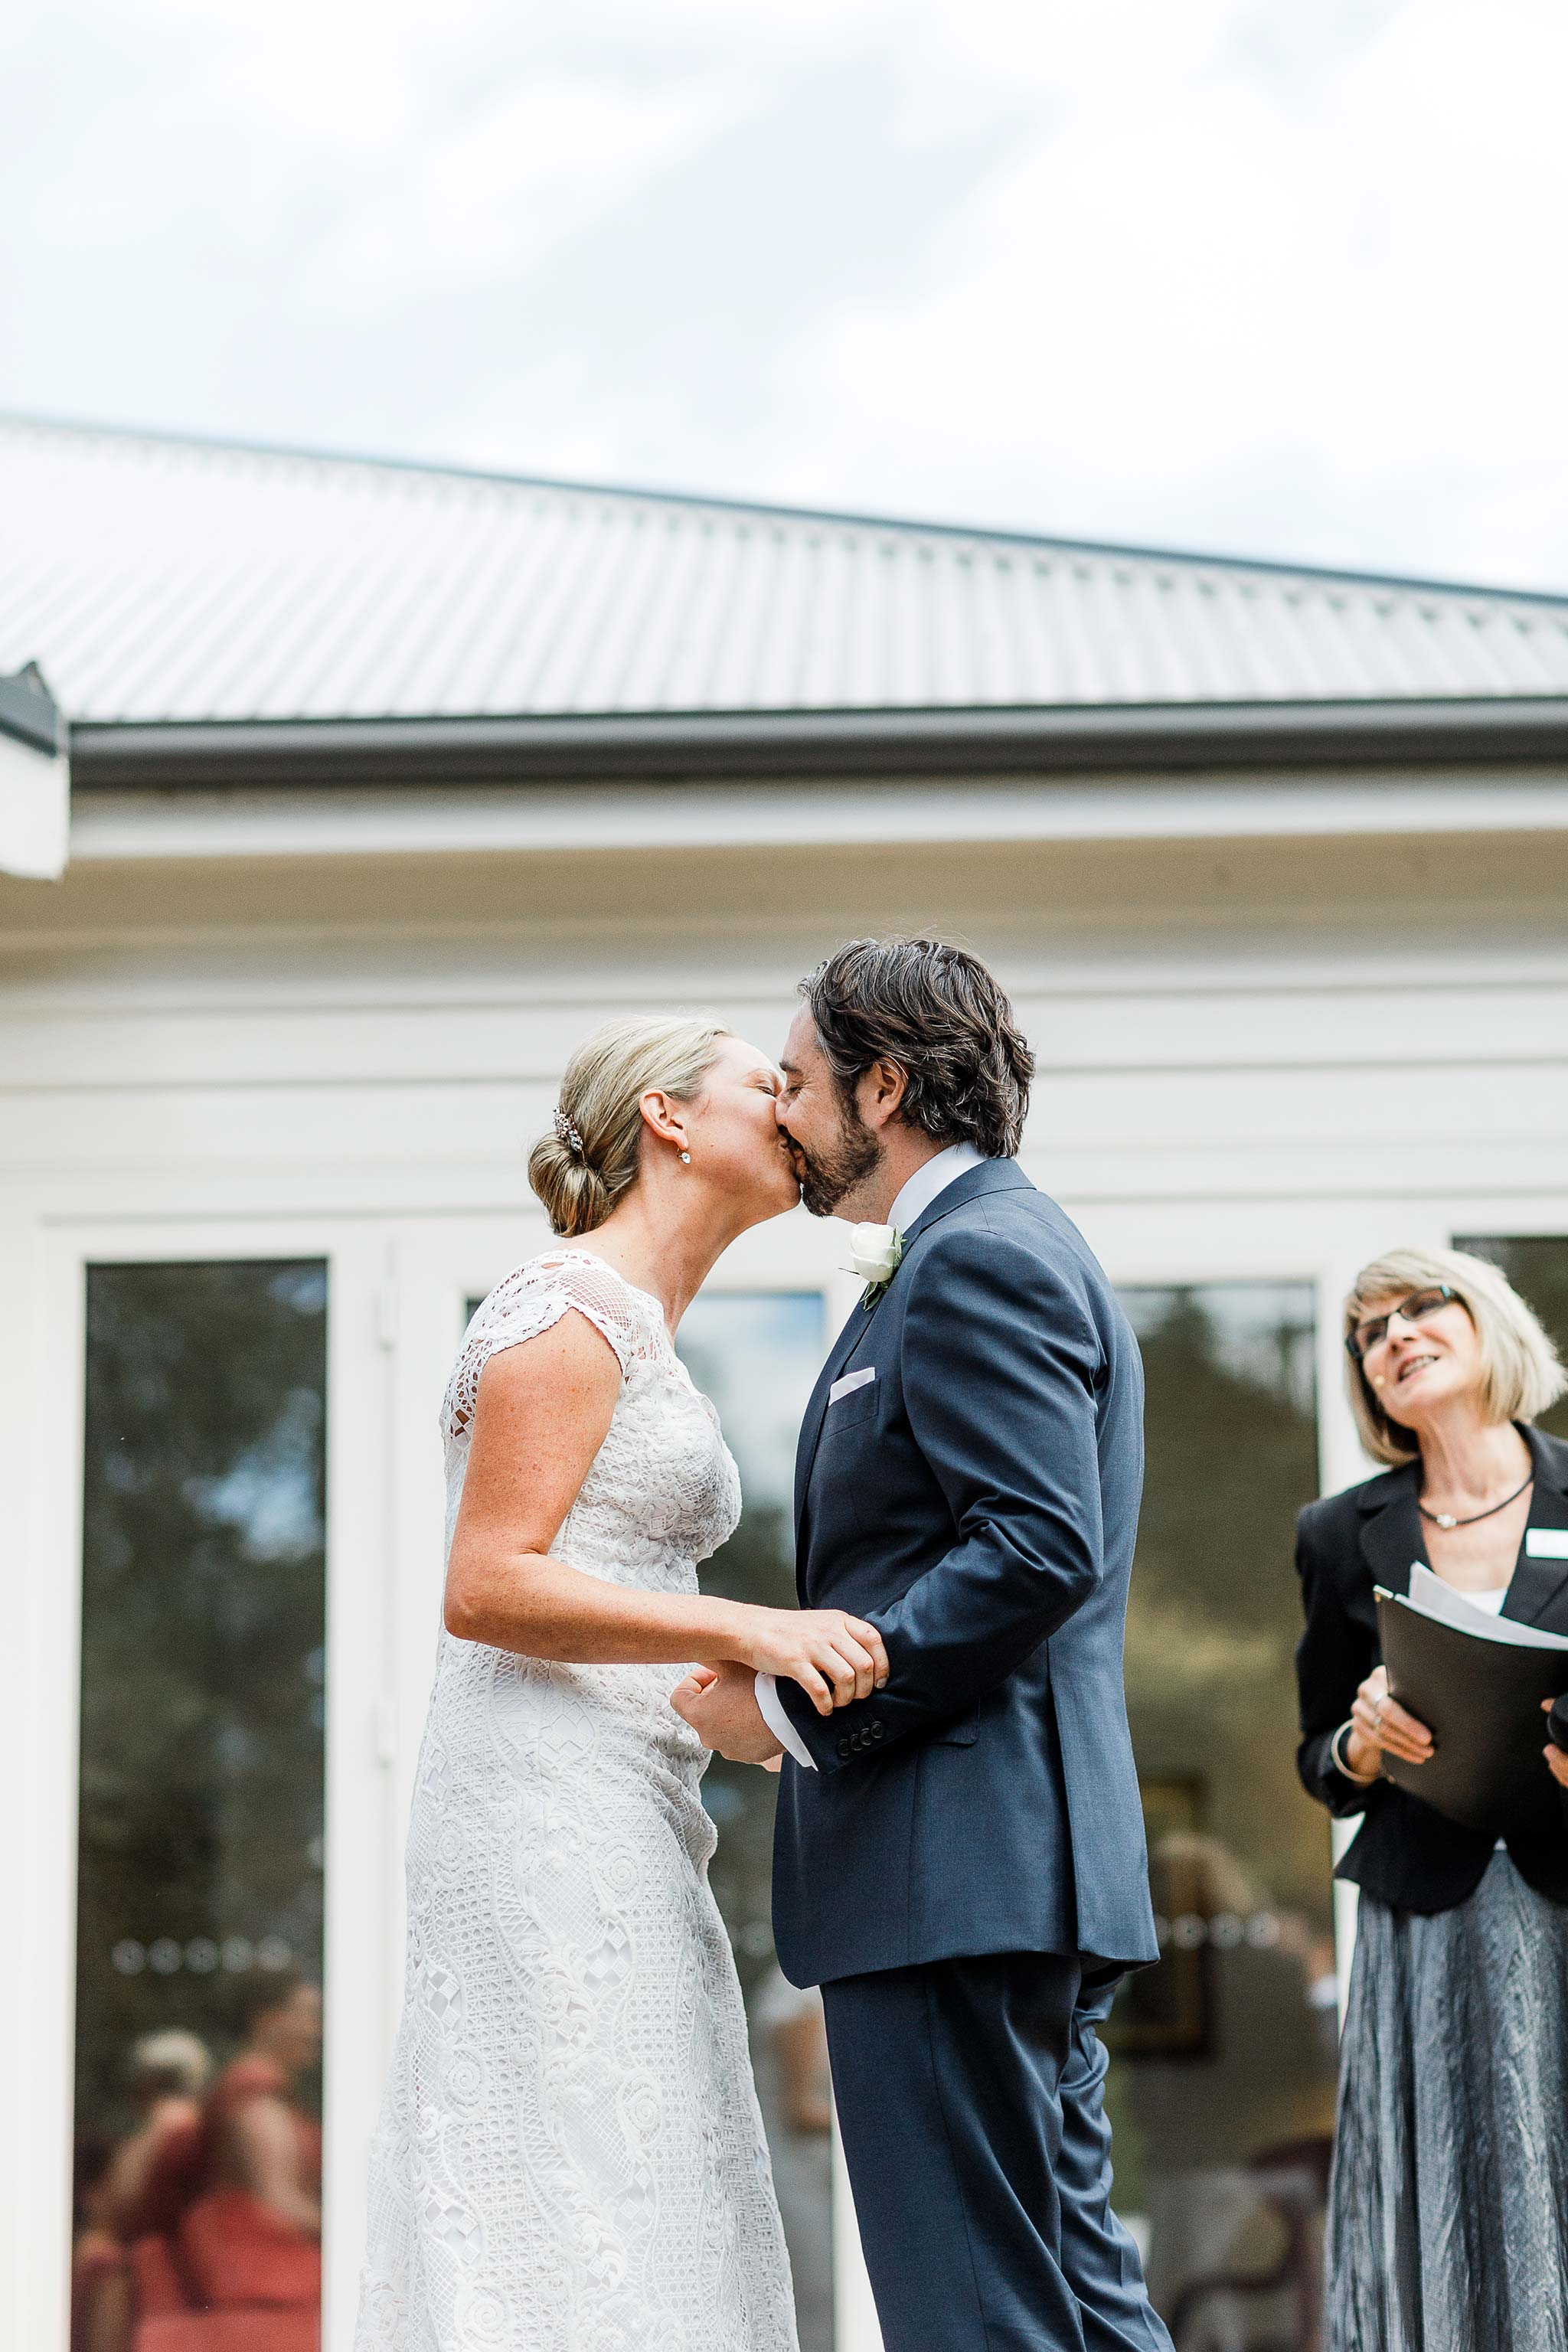 Tasmania-Davenport-Farm-Wedding-kiss